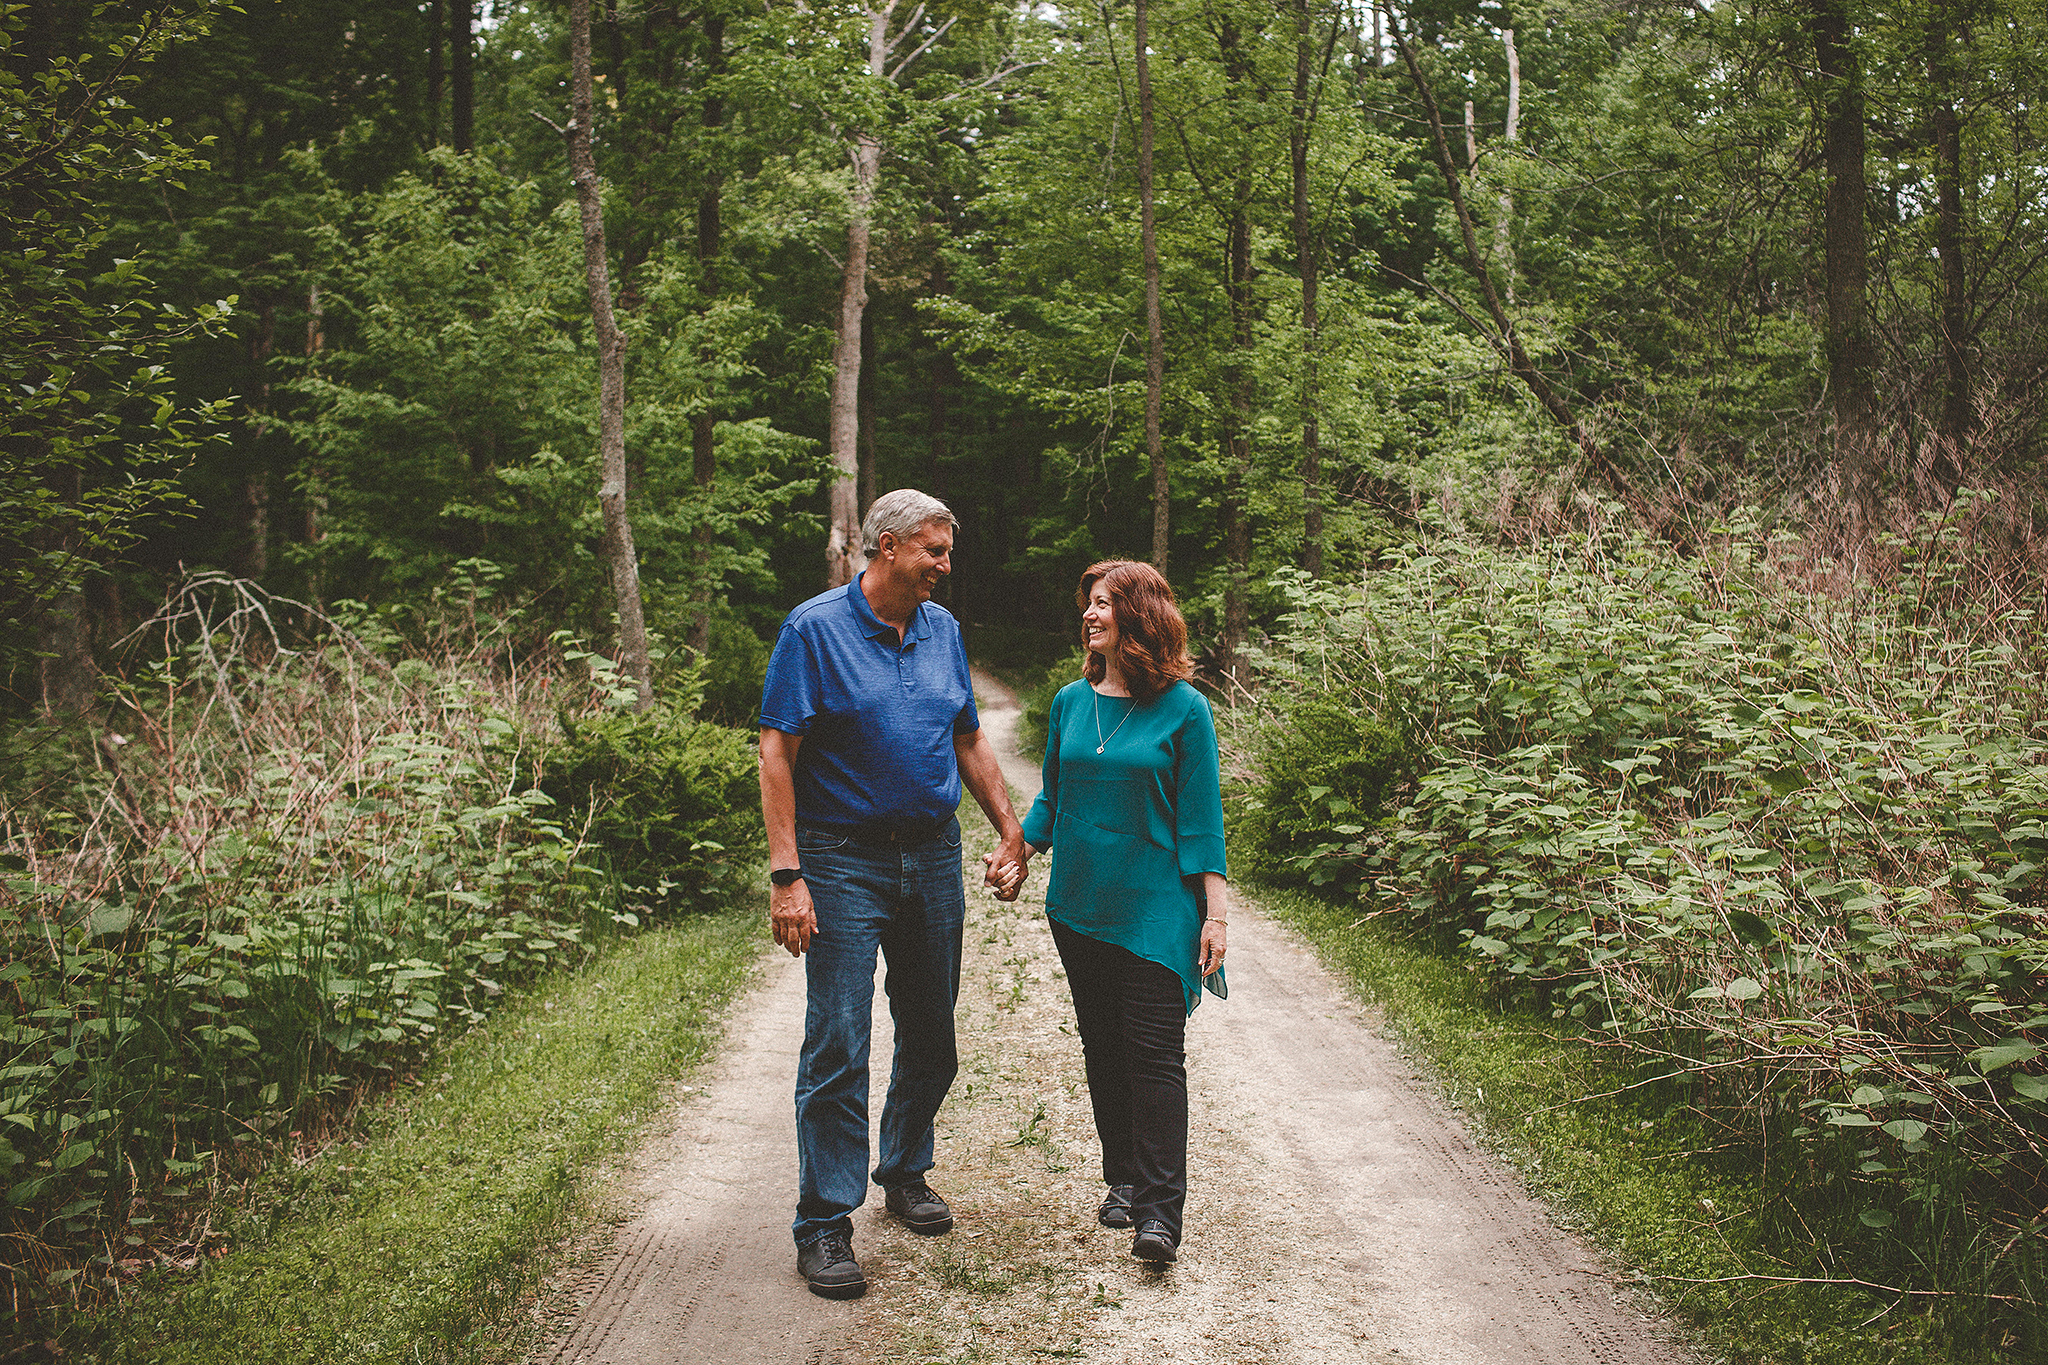 Mature couple walking in the forest | Sheboygan, WI photographer | Chrissy Deming photography